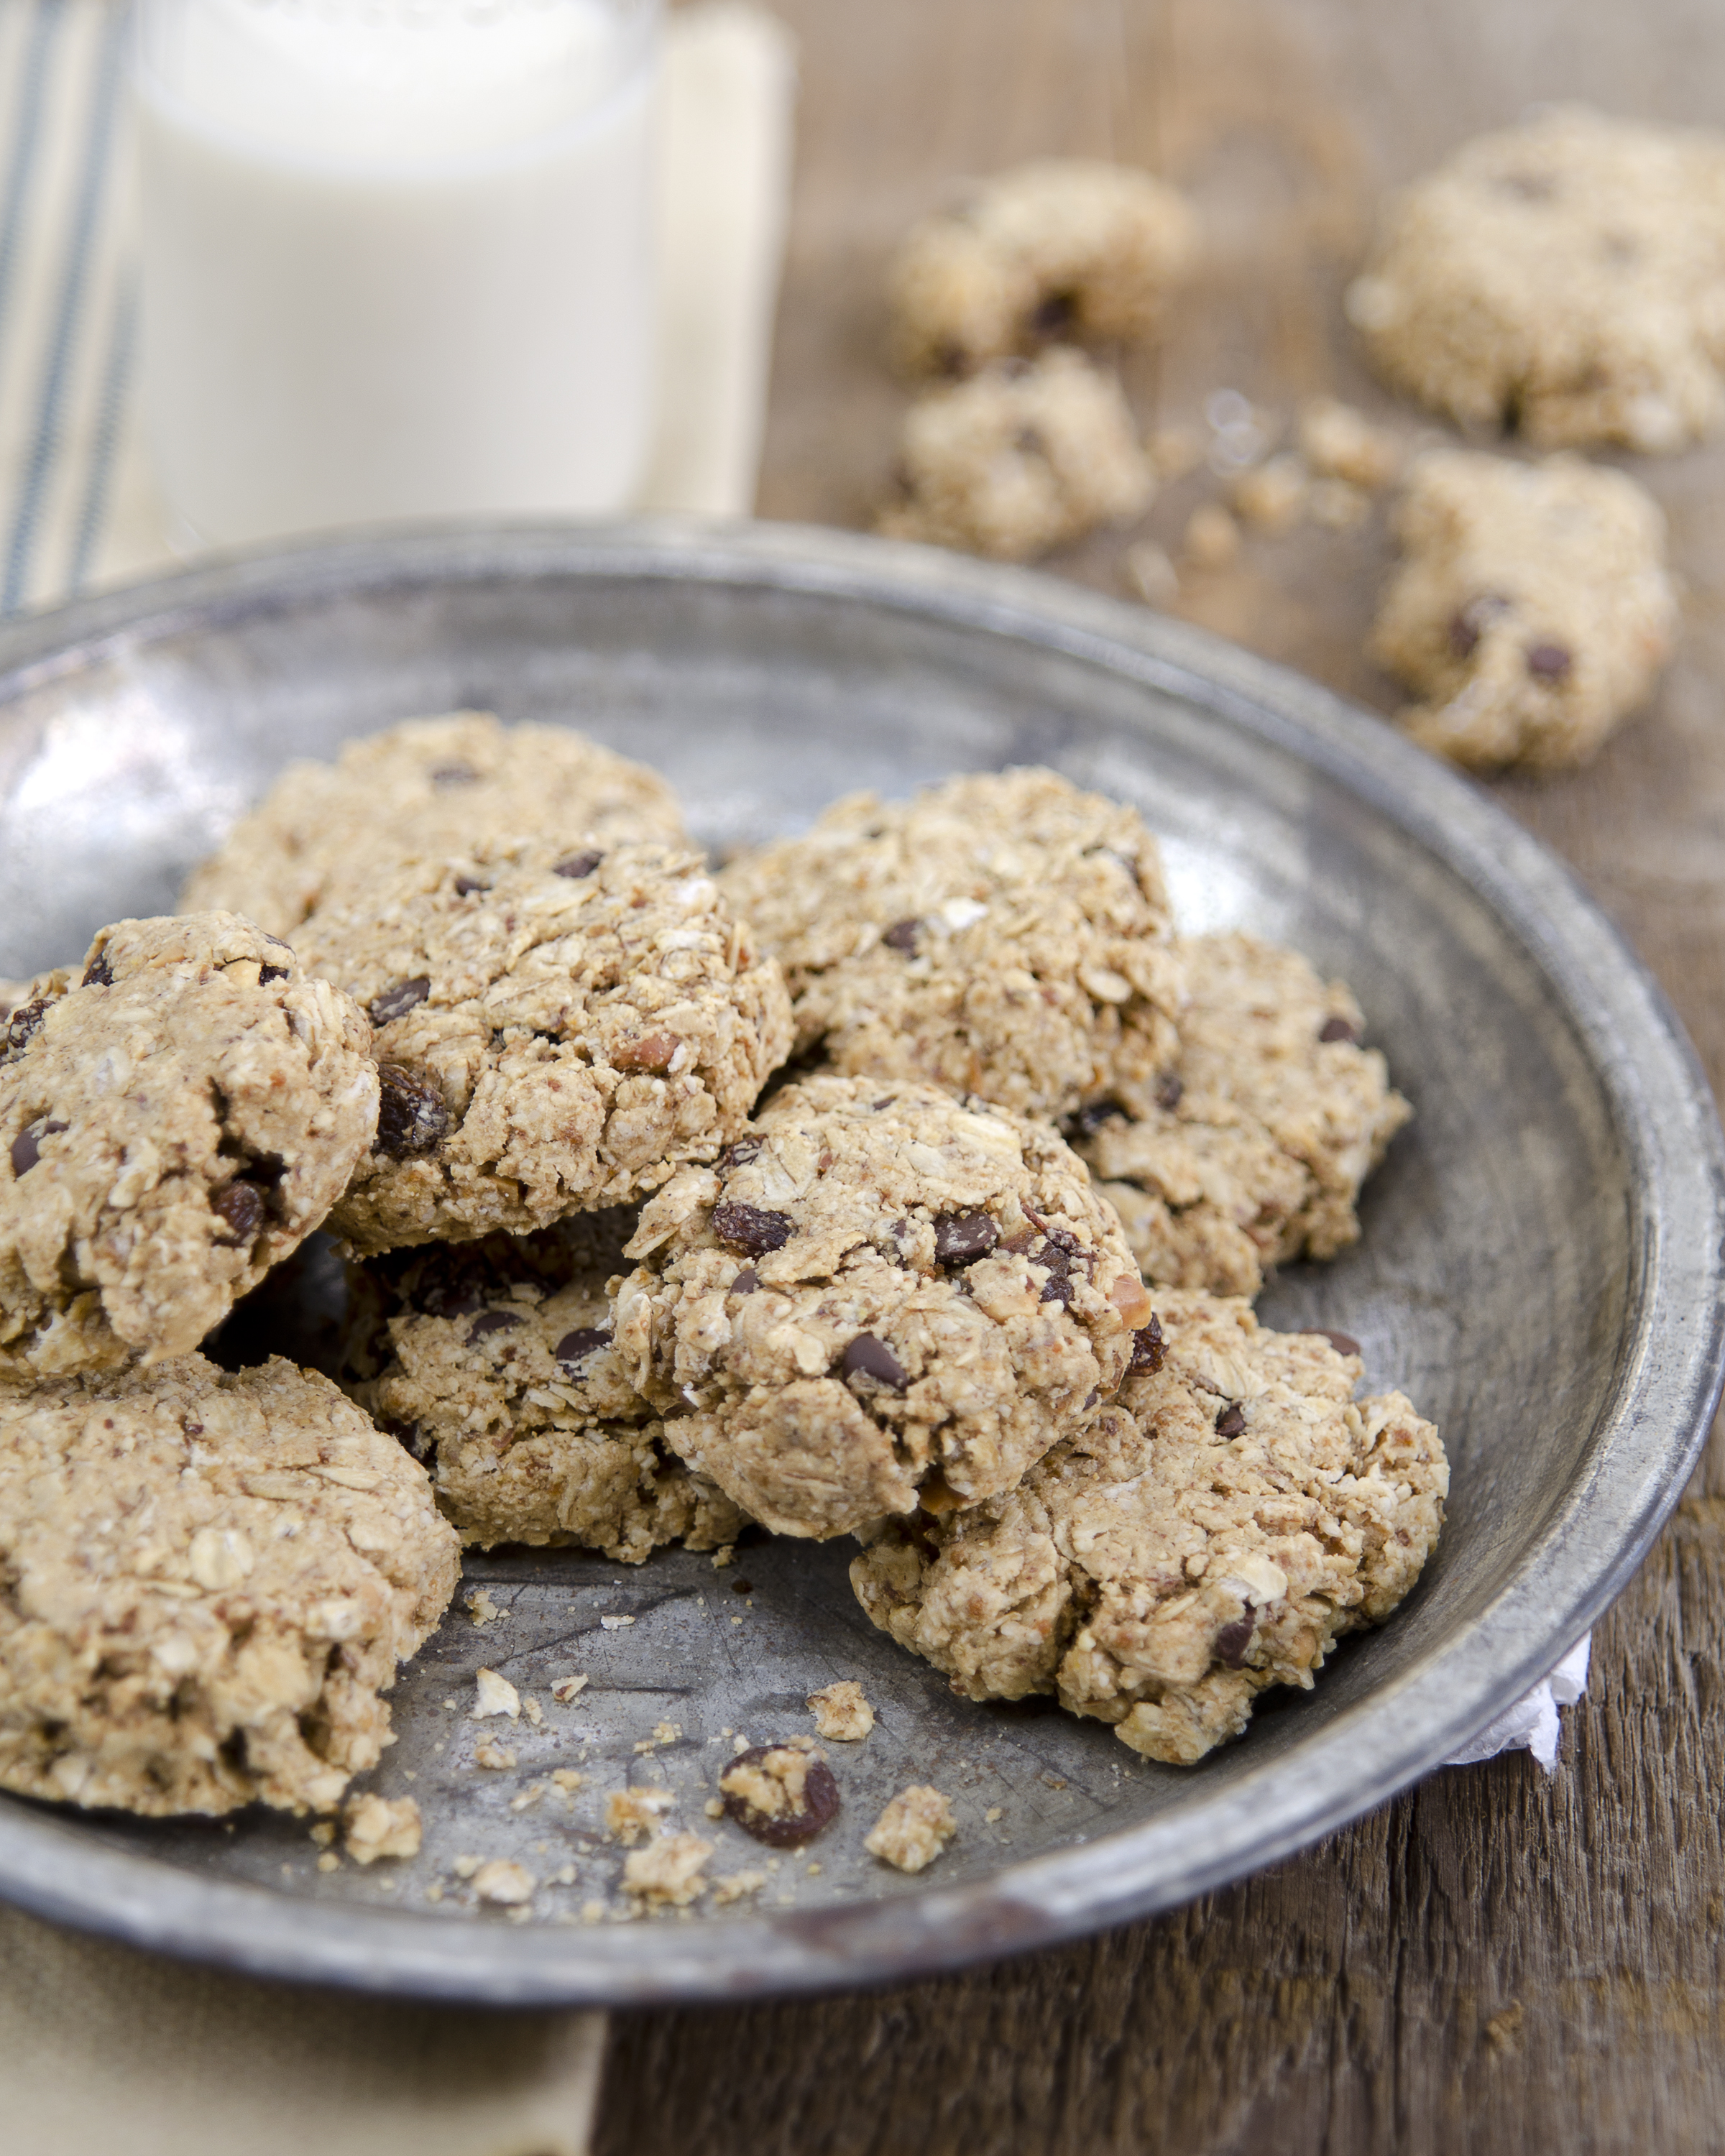 Oatmeal Peanut Butter Chocolate Chip Cookies by Dreena Burton, Plant-Powered Kitchen